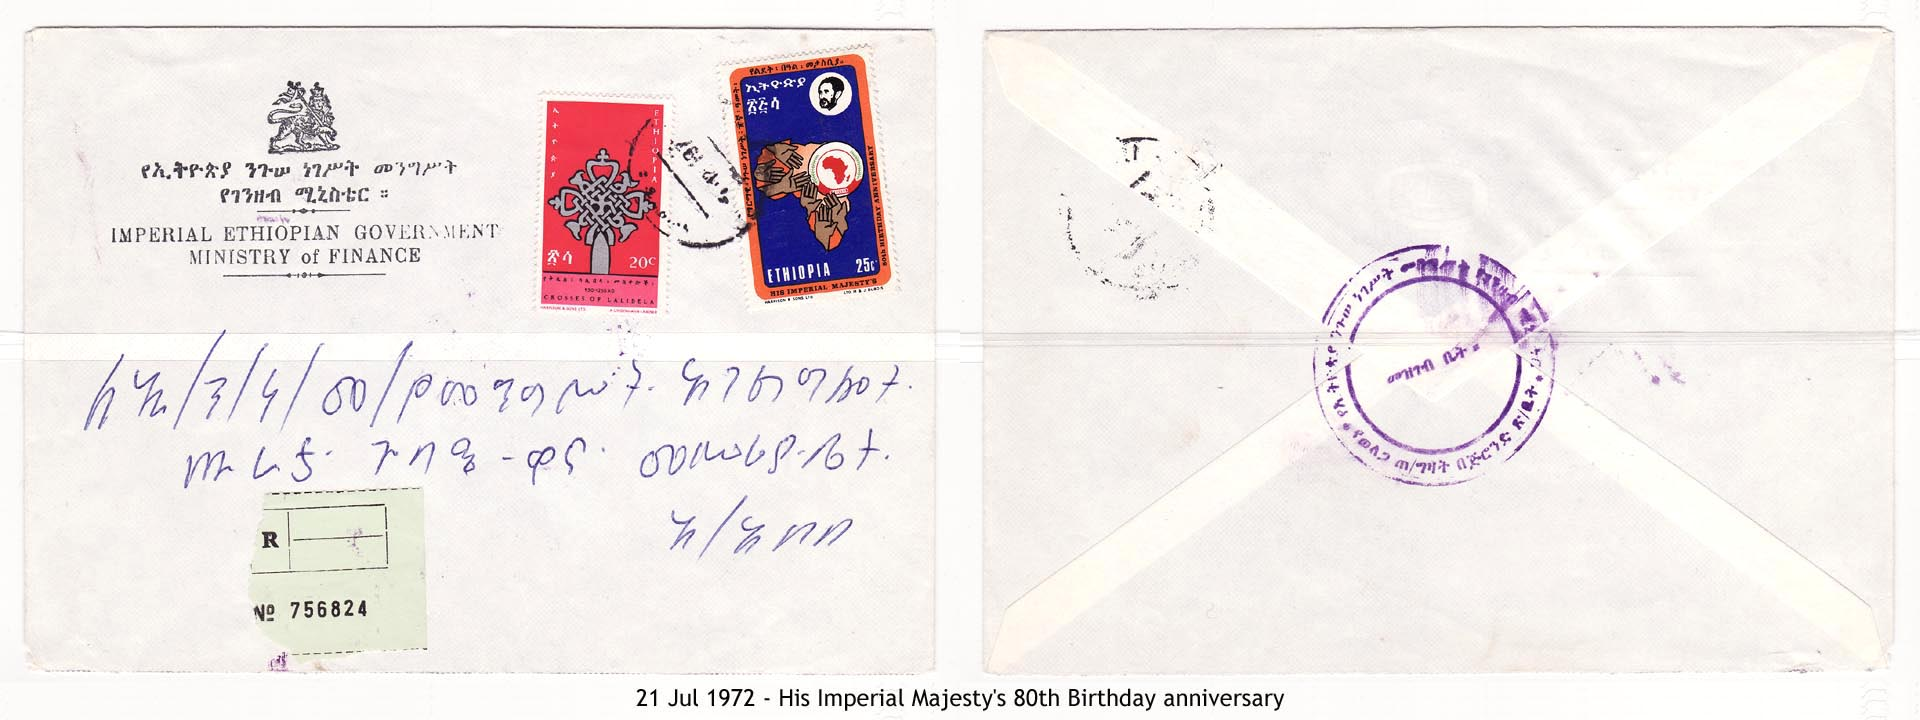 19720721 - His Imperial Majestys 80th Birthday anniversary